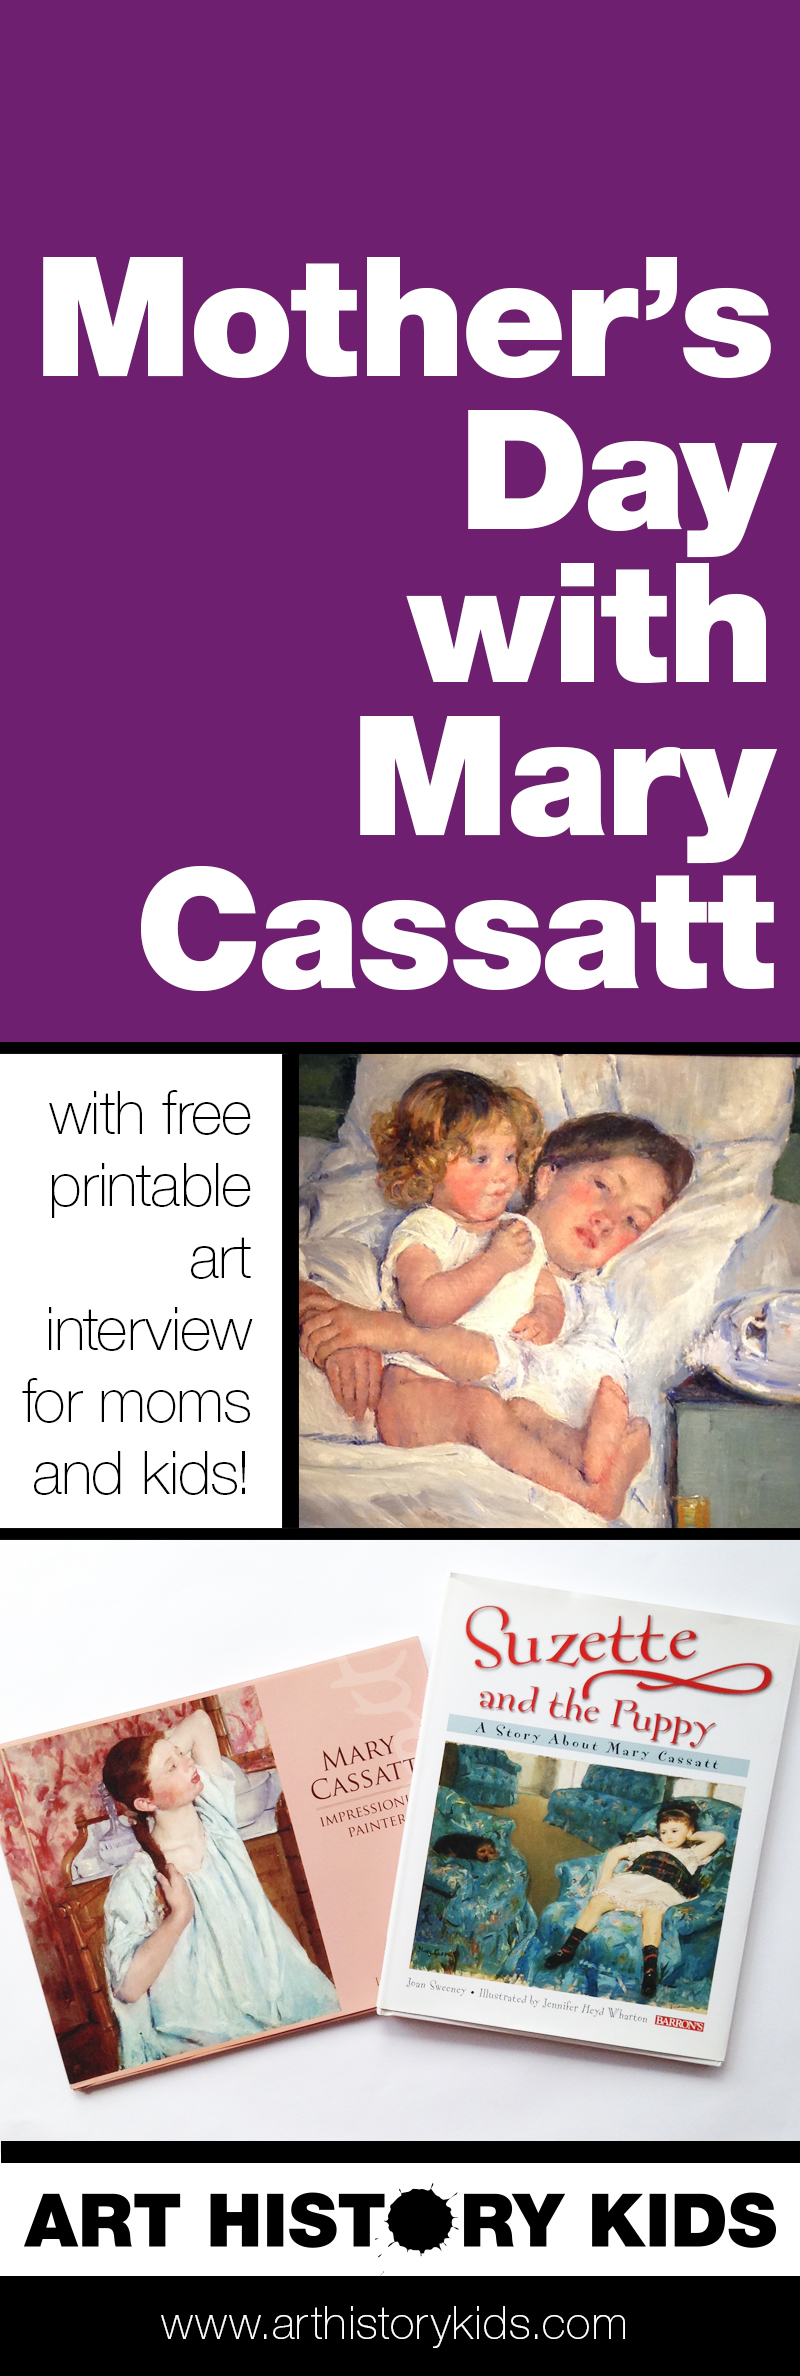 Spend some time together this Mother's Day doing this fun art project inspired by Mary Cassatt! Kids will read (or hear) about her art and life, and then paint a memory of their most loving time together with their Mom. Includes a fun FREE printable interview to keep with the painting. It would be a great art lesson to repeat each year, and have a whole collection of them later on!